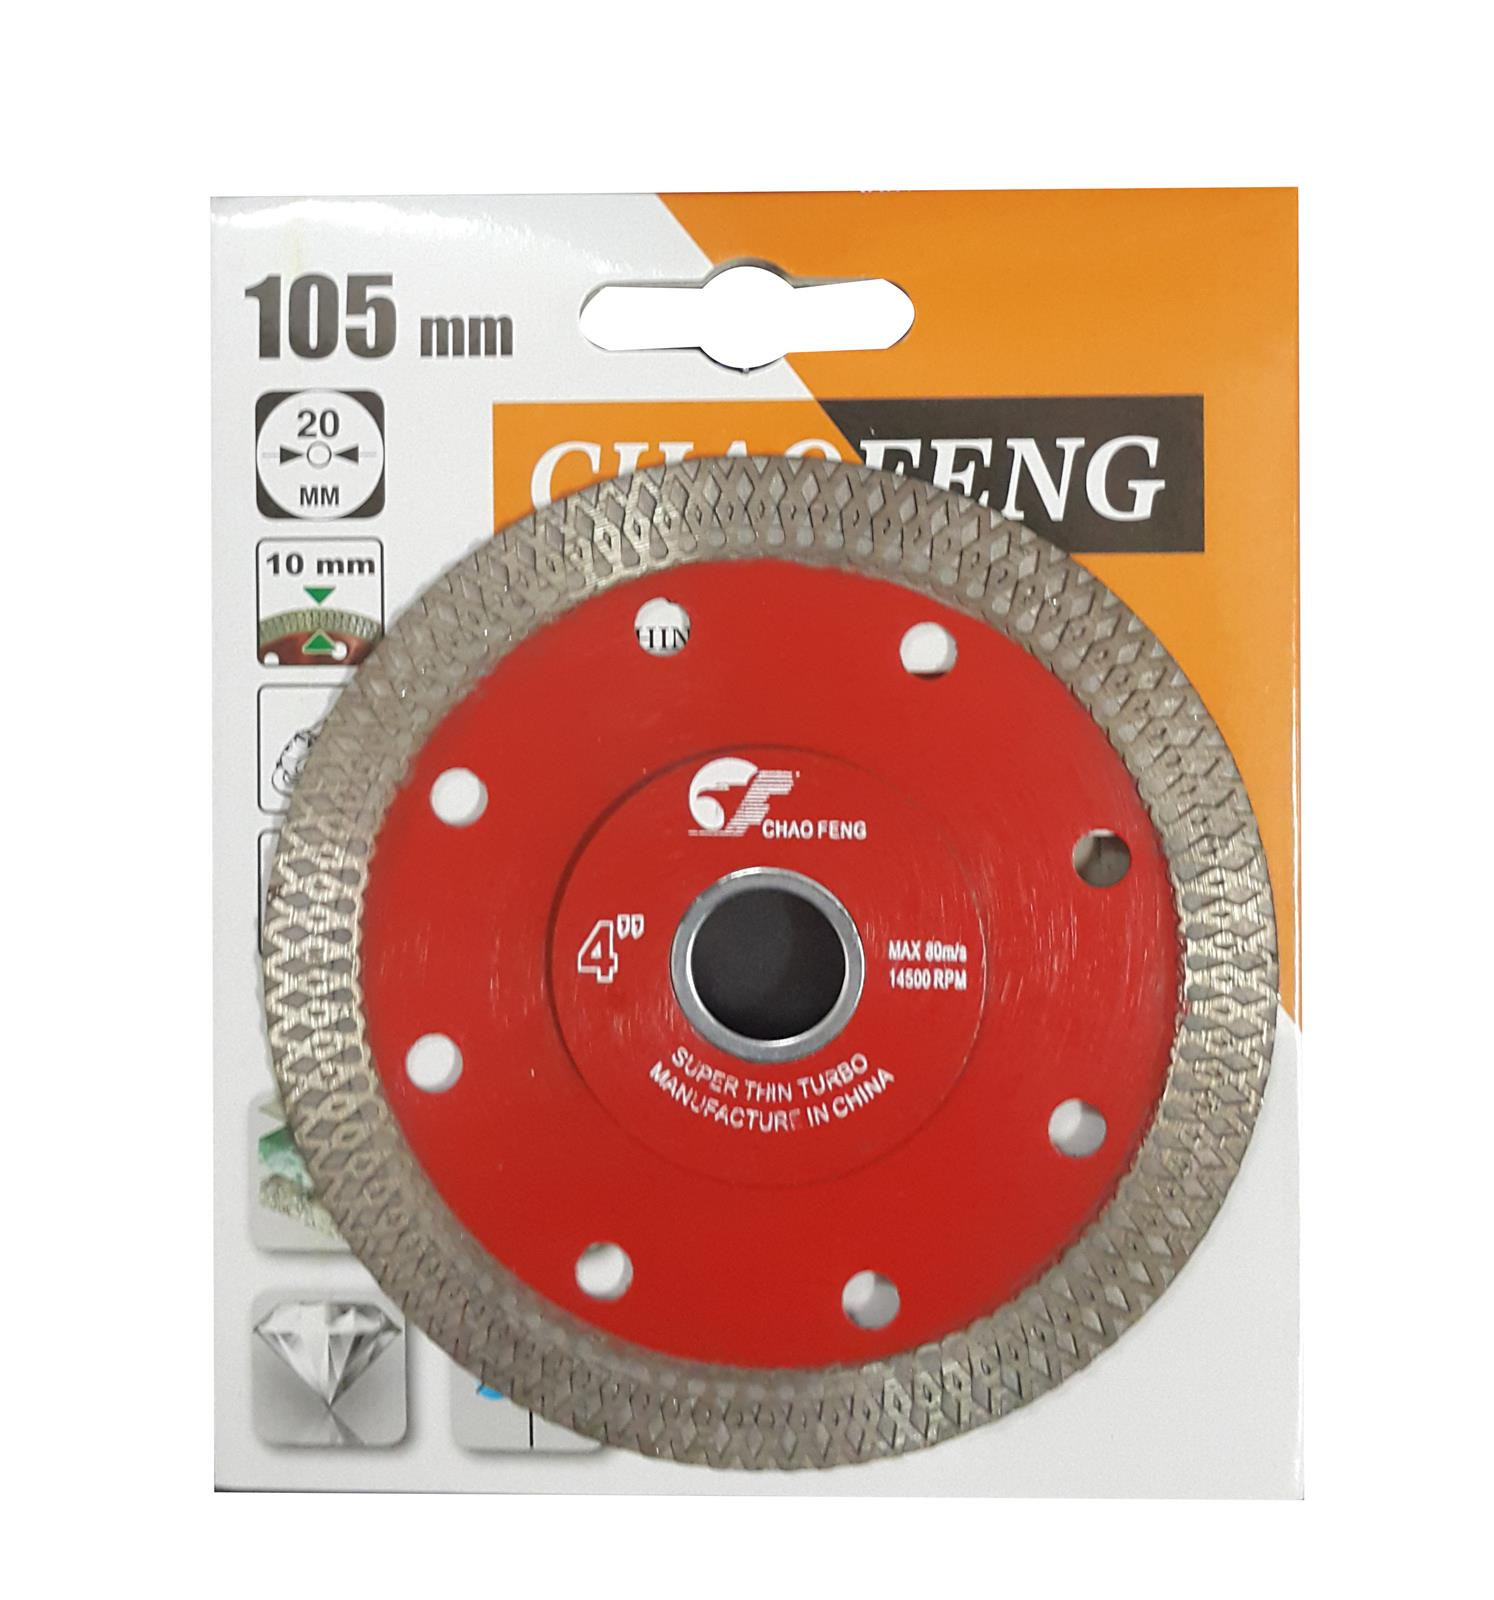 4 Inch Chao Feng Diamond Cutting Blade